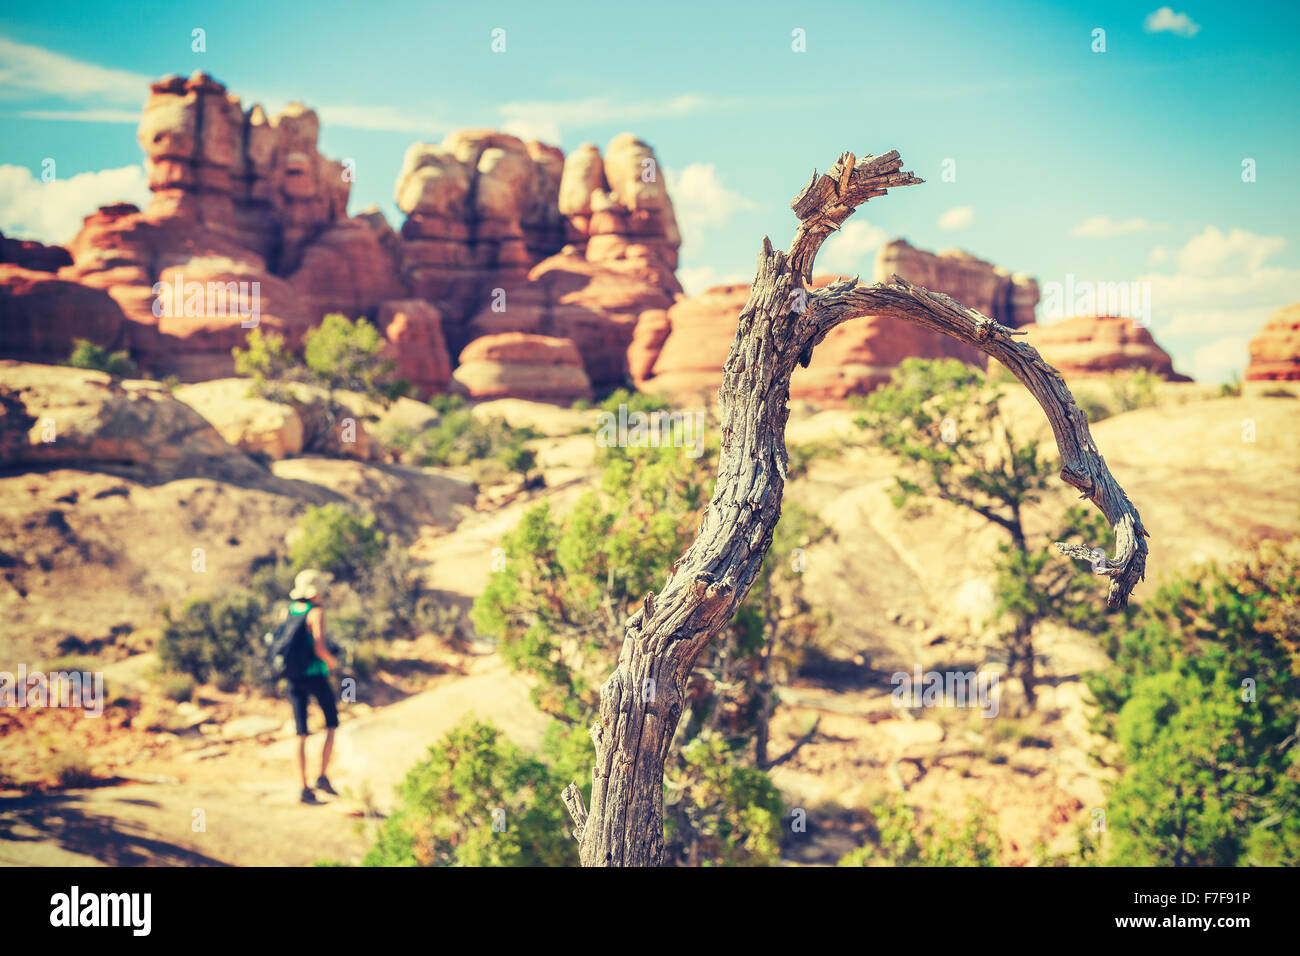 Old film stylized dry tree by trekking trail, shallow depth of field. - Stock Image